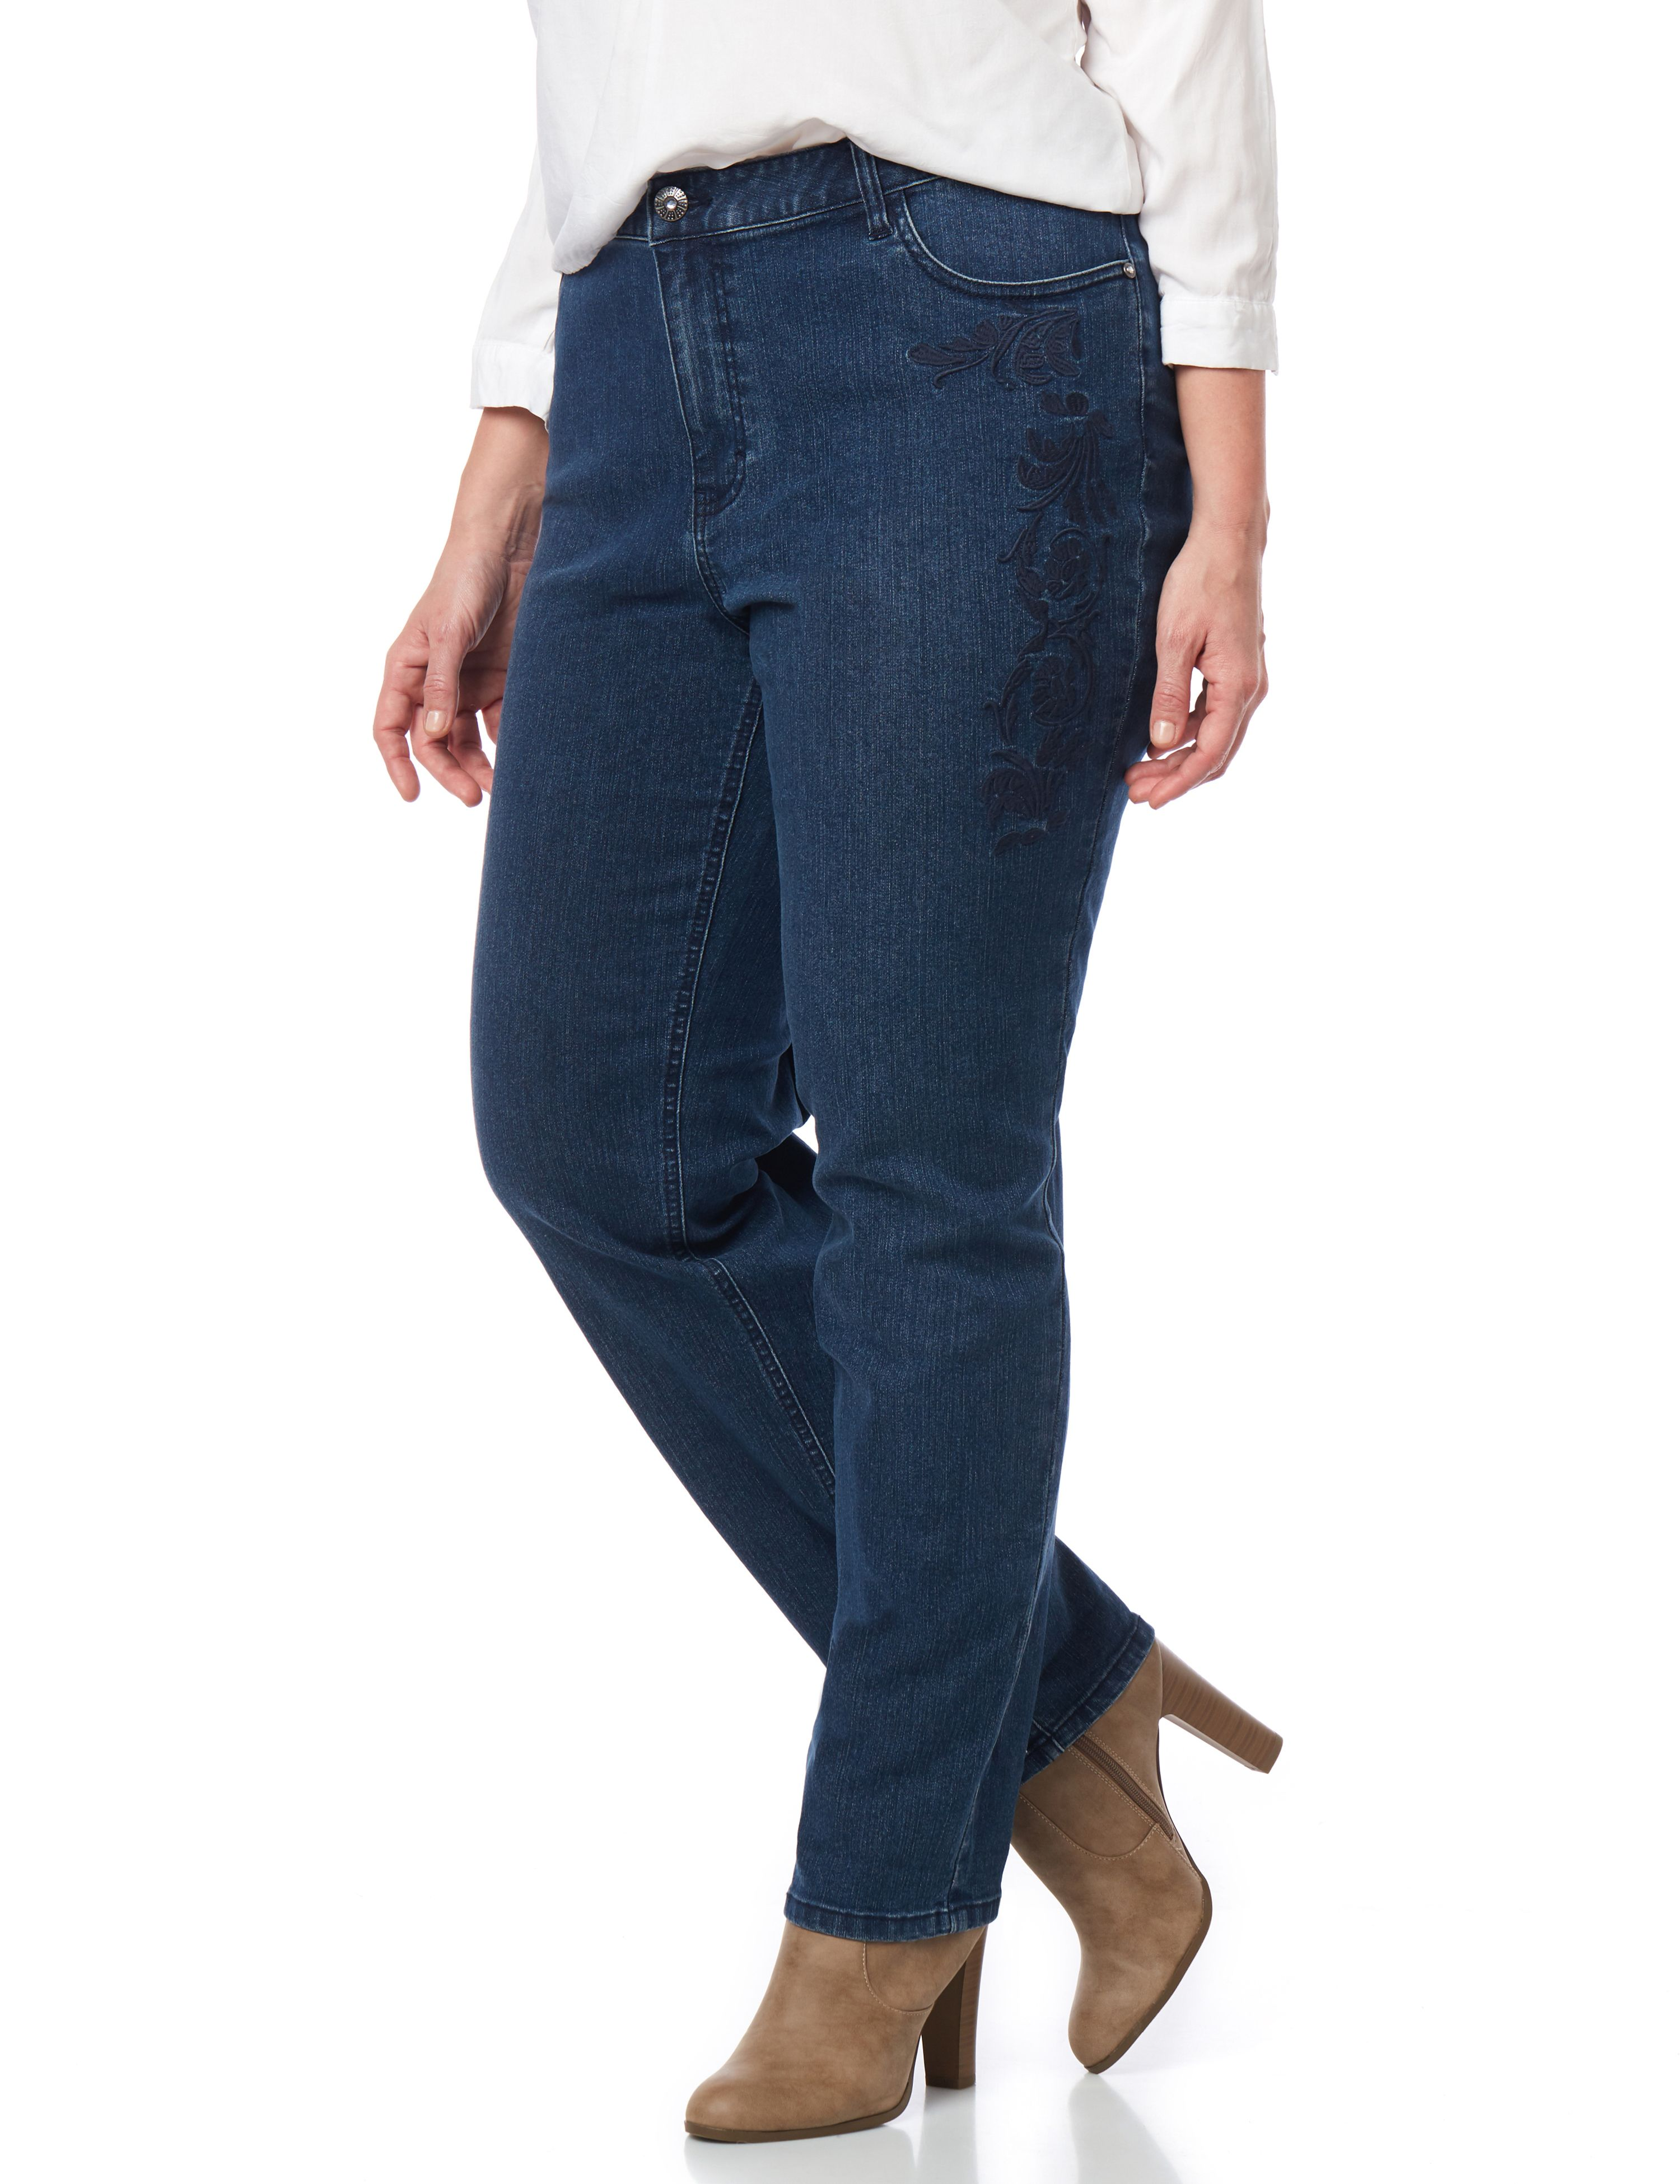 Tonal Embroidered Denim Jean 1084754 Embroidered Tonal Denim Str MP-300084005